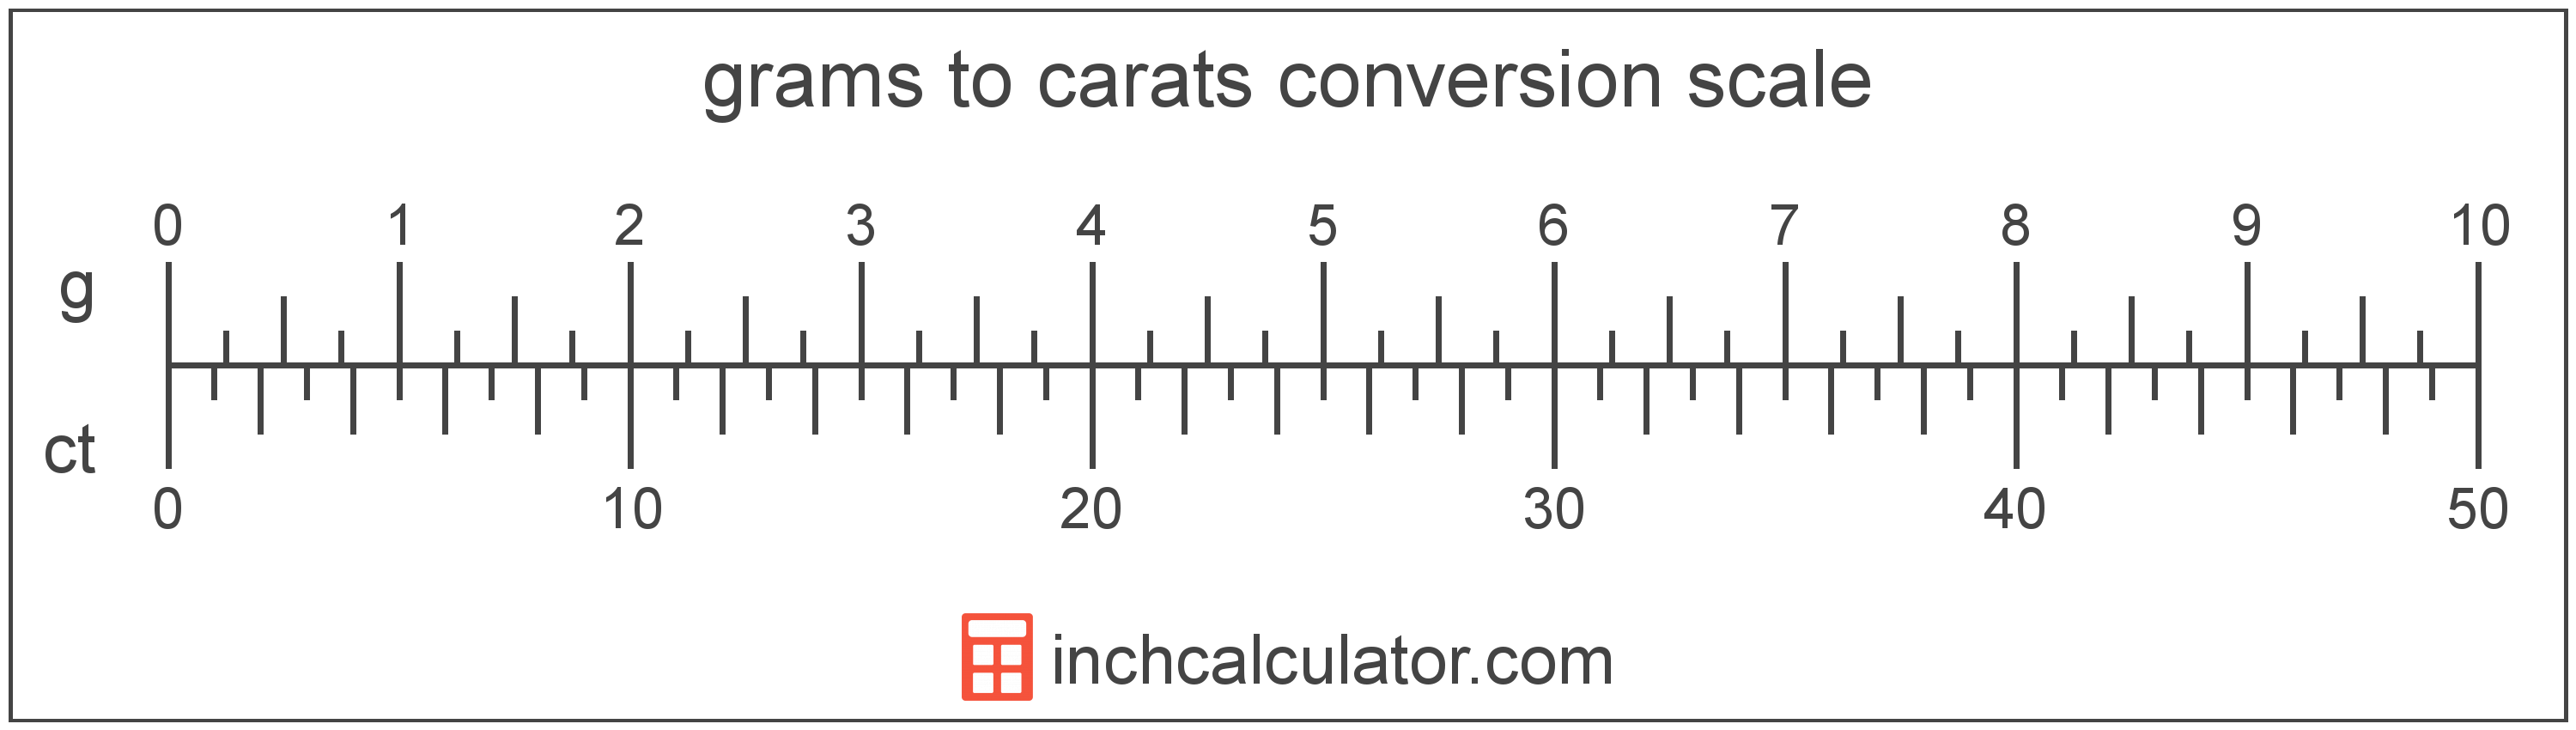 conversion scale showing carats and equivalent grams weight values